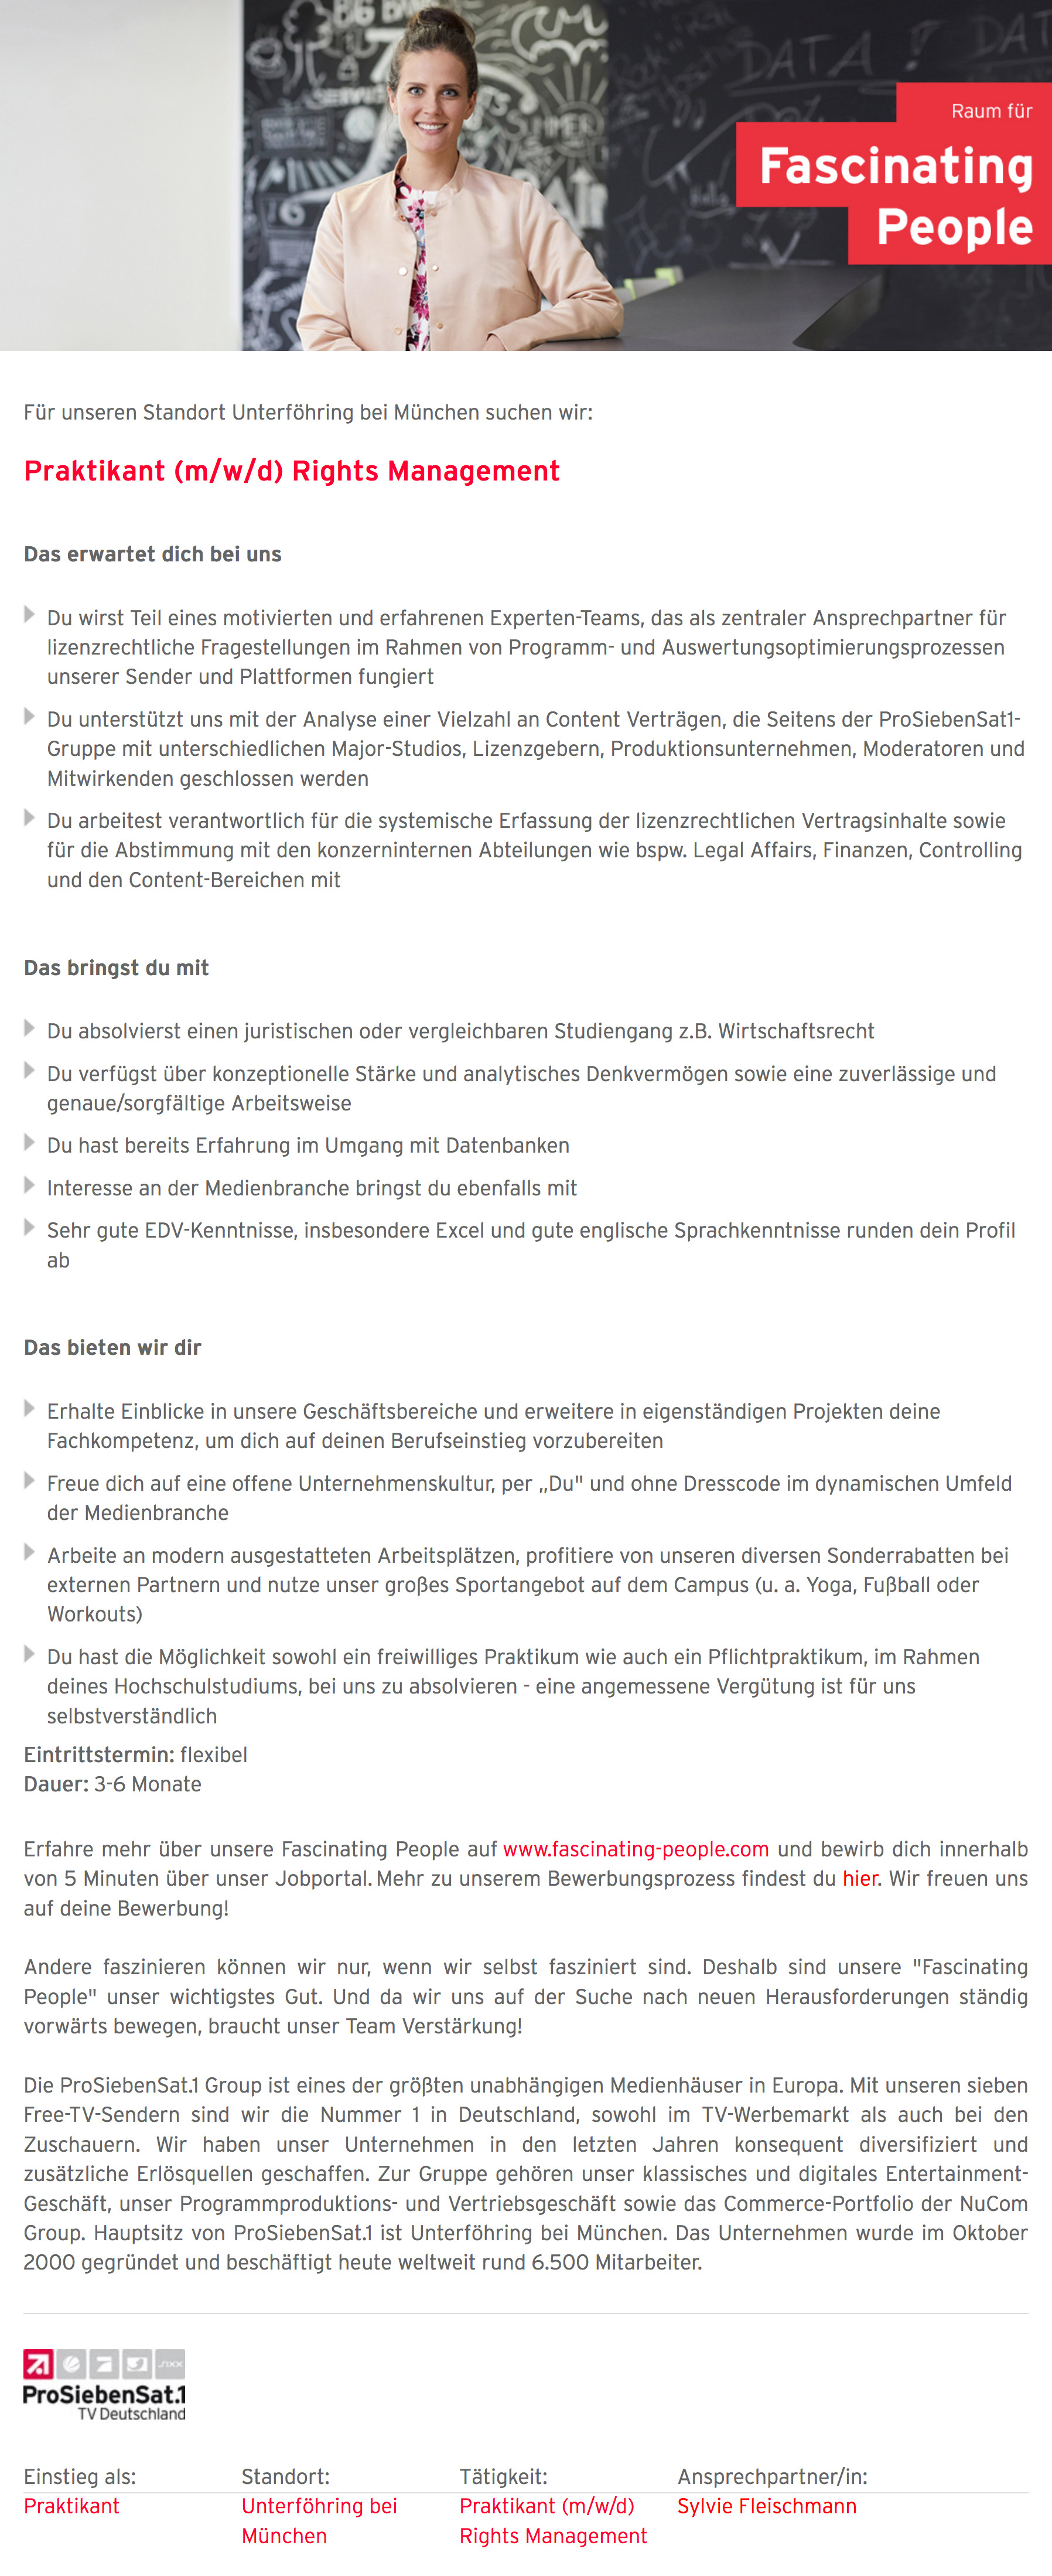 Praktikant (m/w/d) Rights Management